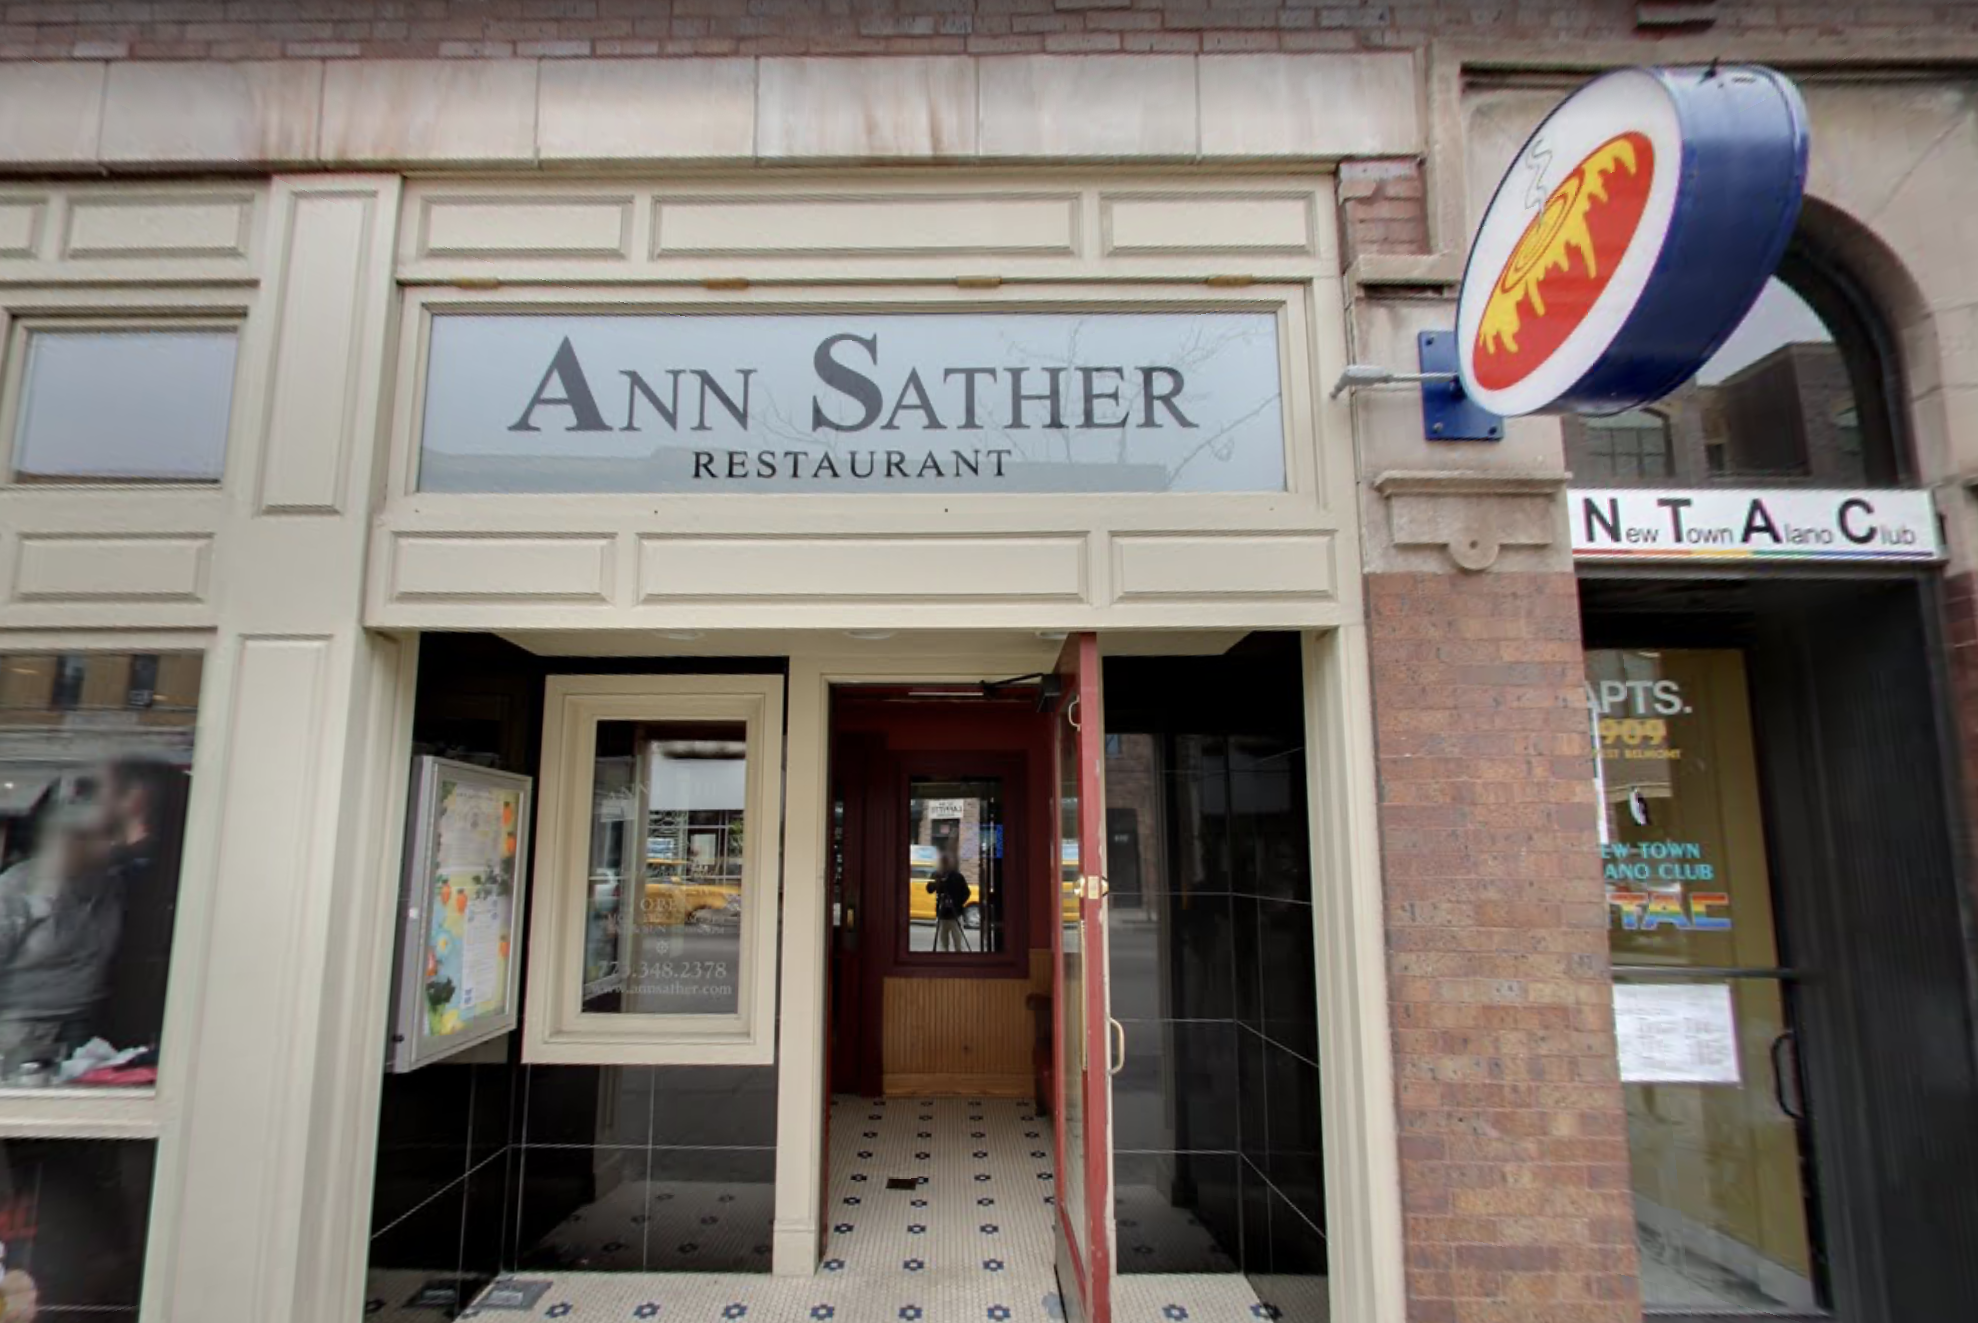 A storefront of a restaurant.